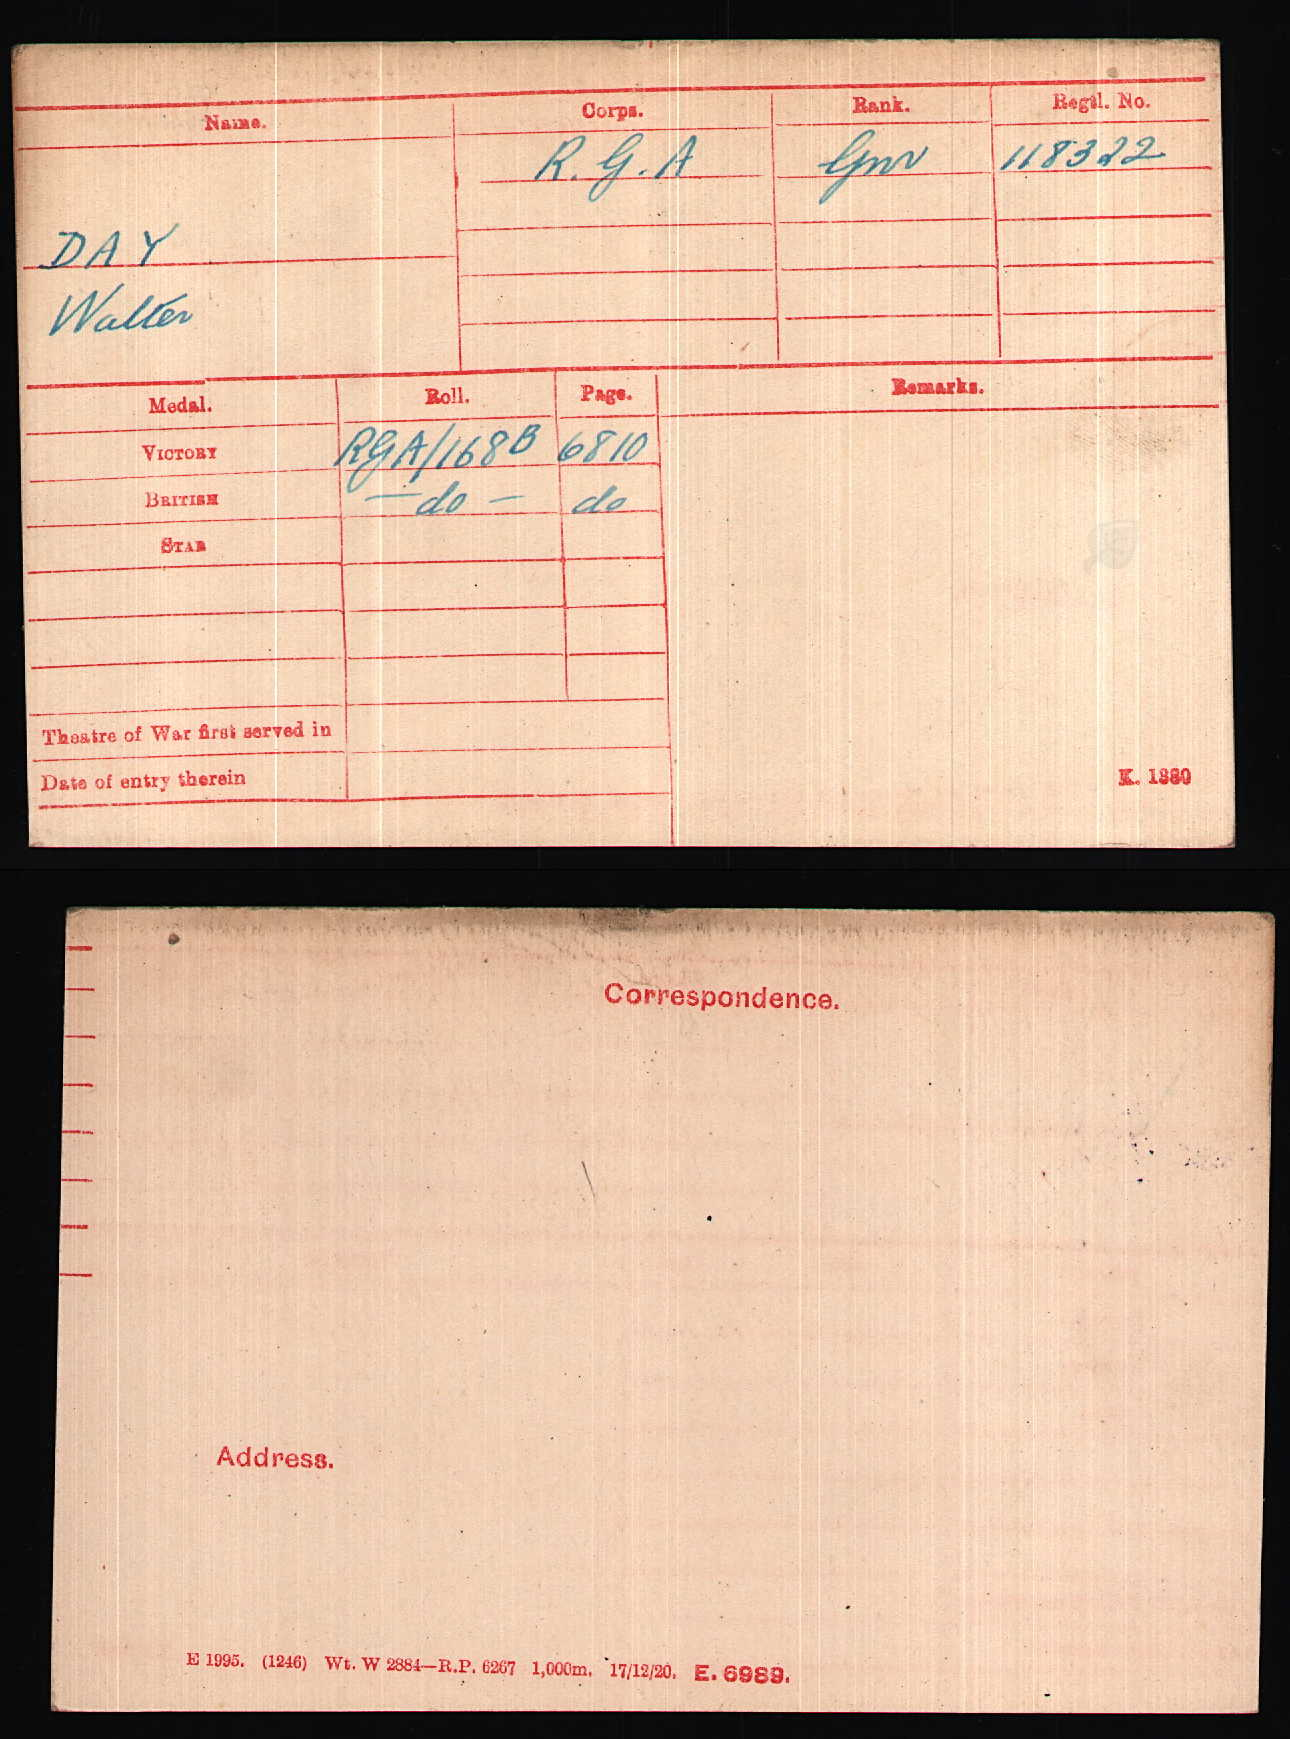 1920 - Day, Walter - Medal Card - 30850_A000431-00630